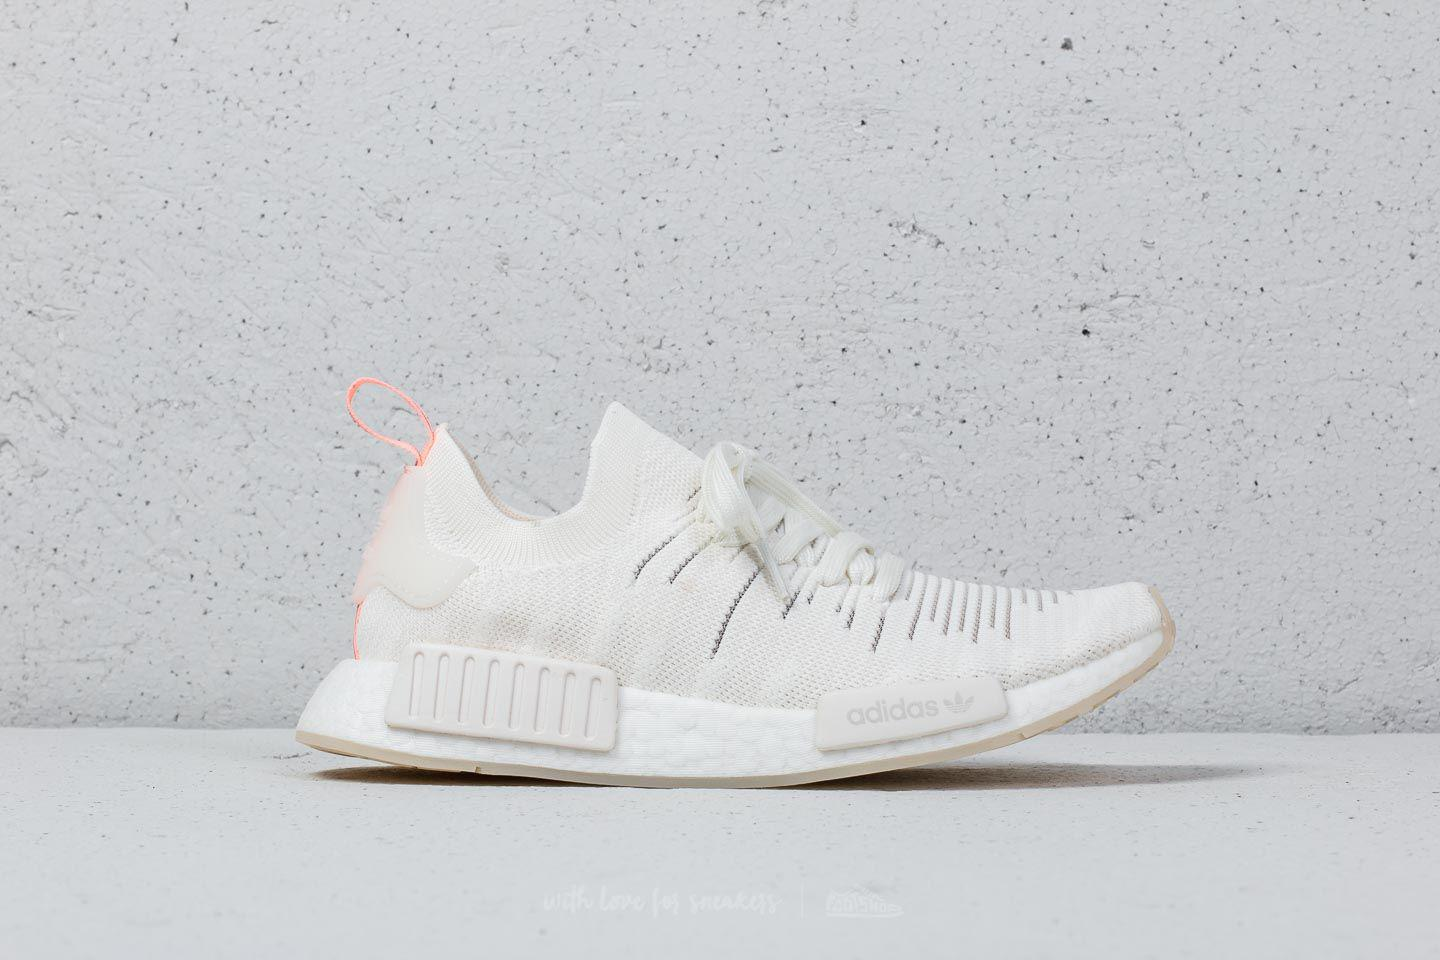 in stock c21a5 1f93d adidas Originals Adidas Nmd r1 Stlt Primeknit W Cloud White  Cloud ...